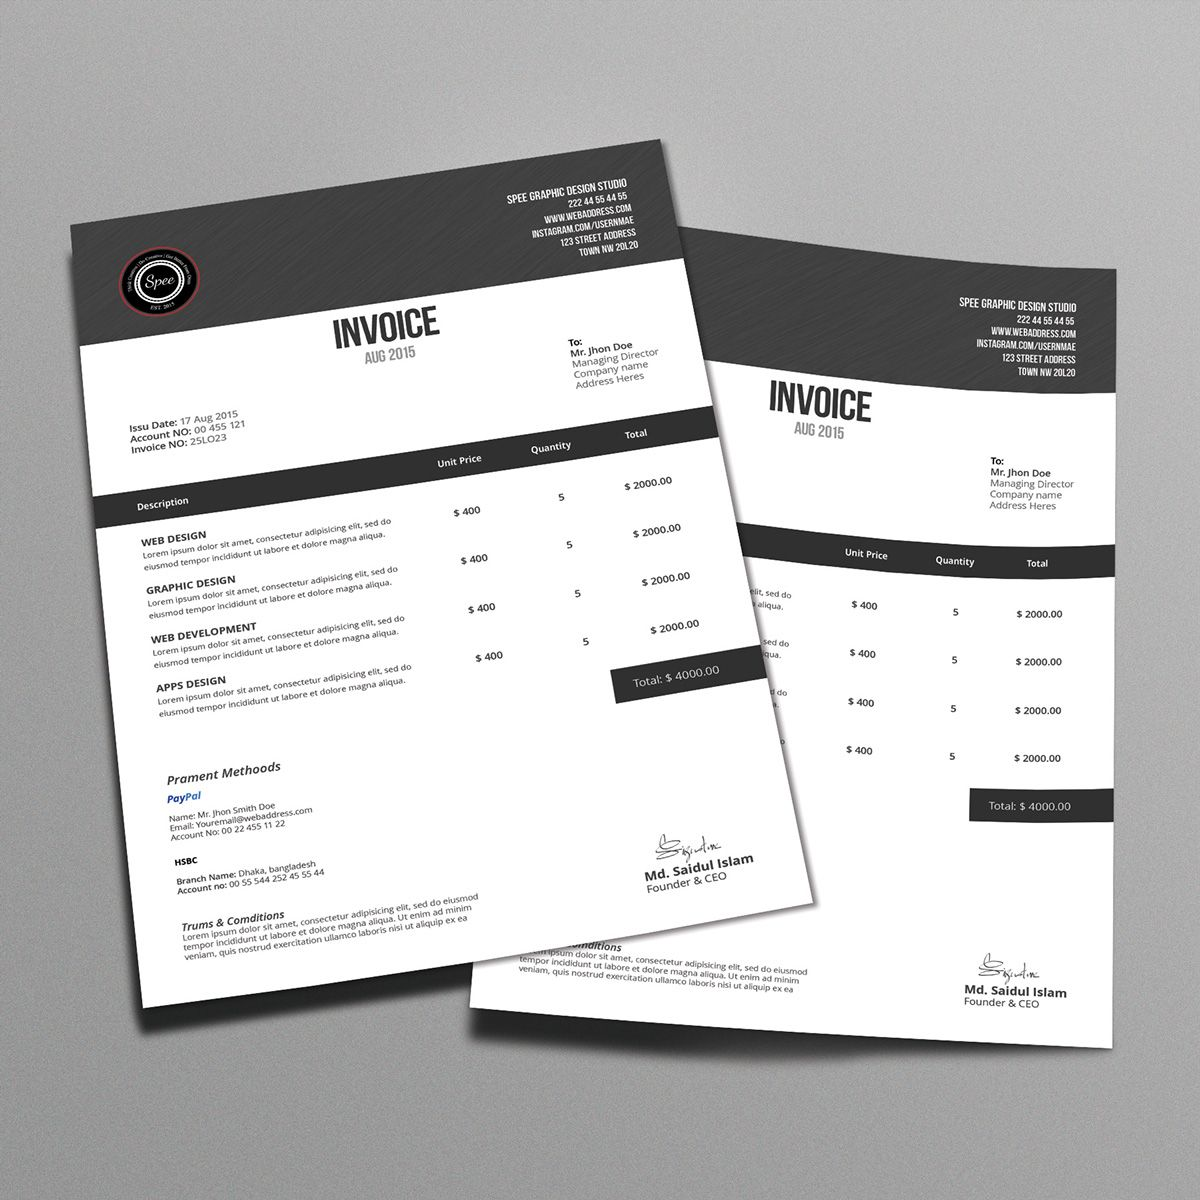 Minimalist Invoice Template Design On Behance Invoice